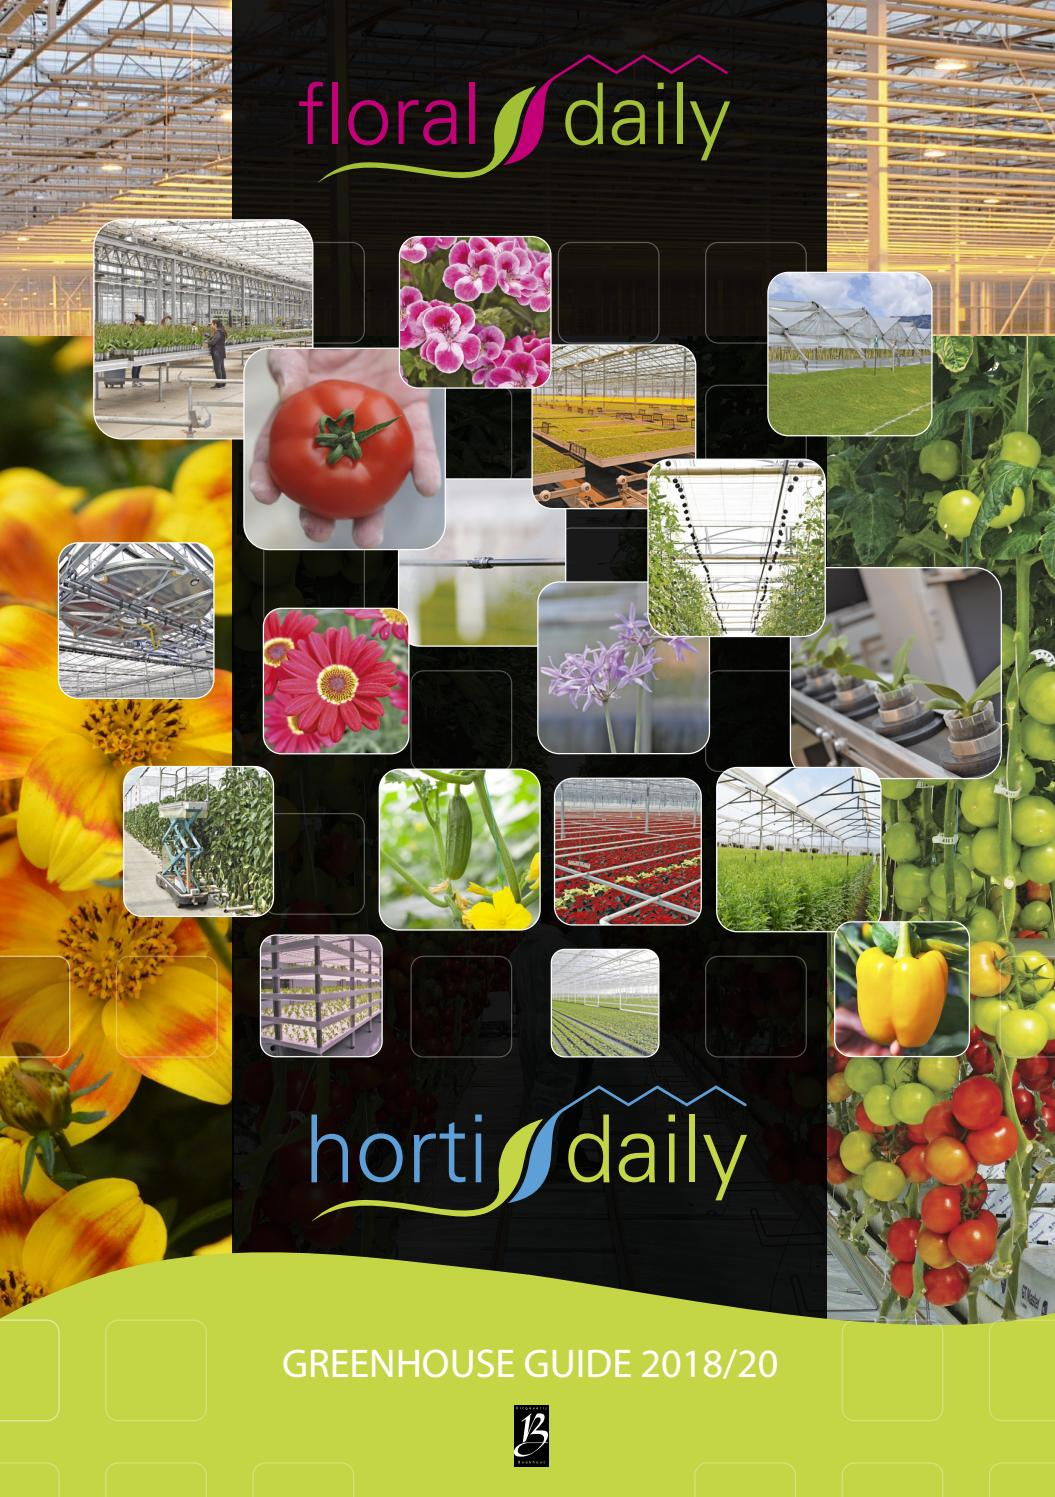 Fleurs En Pot Resistant Au Gel greenhouse guide 2018/20agf vormgeving - issuu